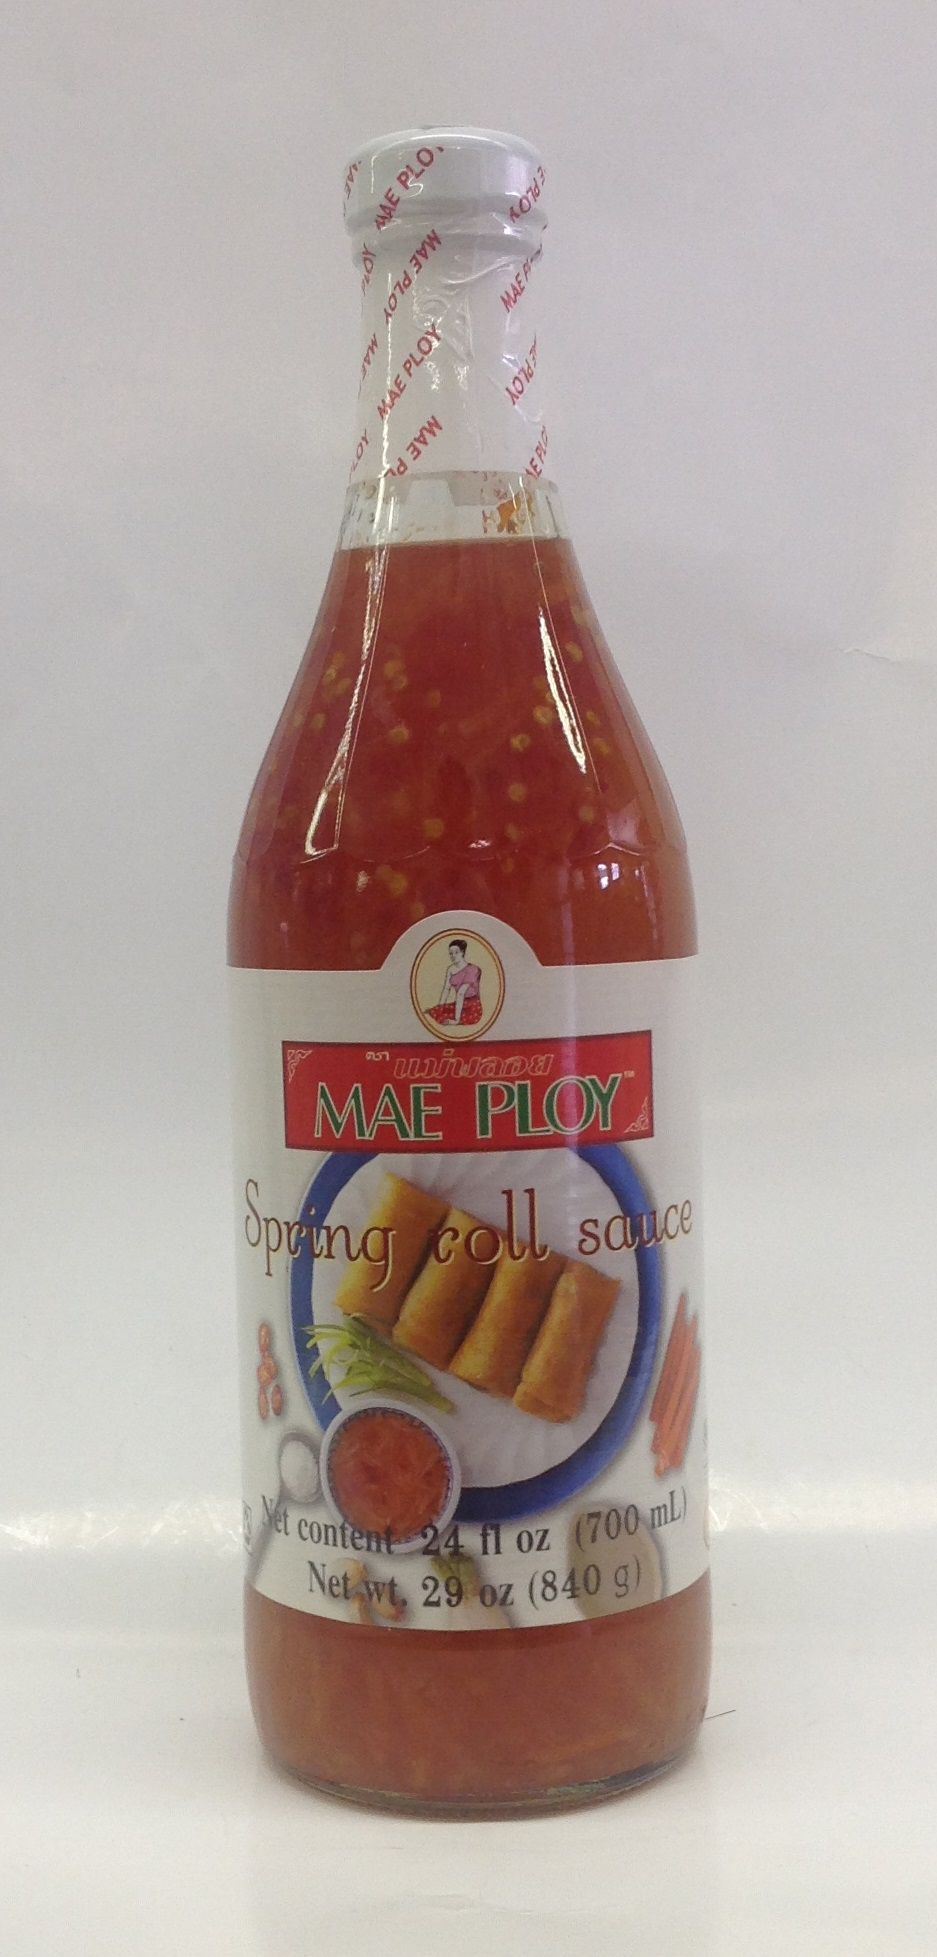 Sweet Chili sauce for Spring Roll   Mae Ploy   SC16210 12x24 oz